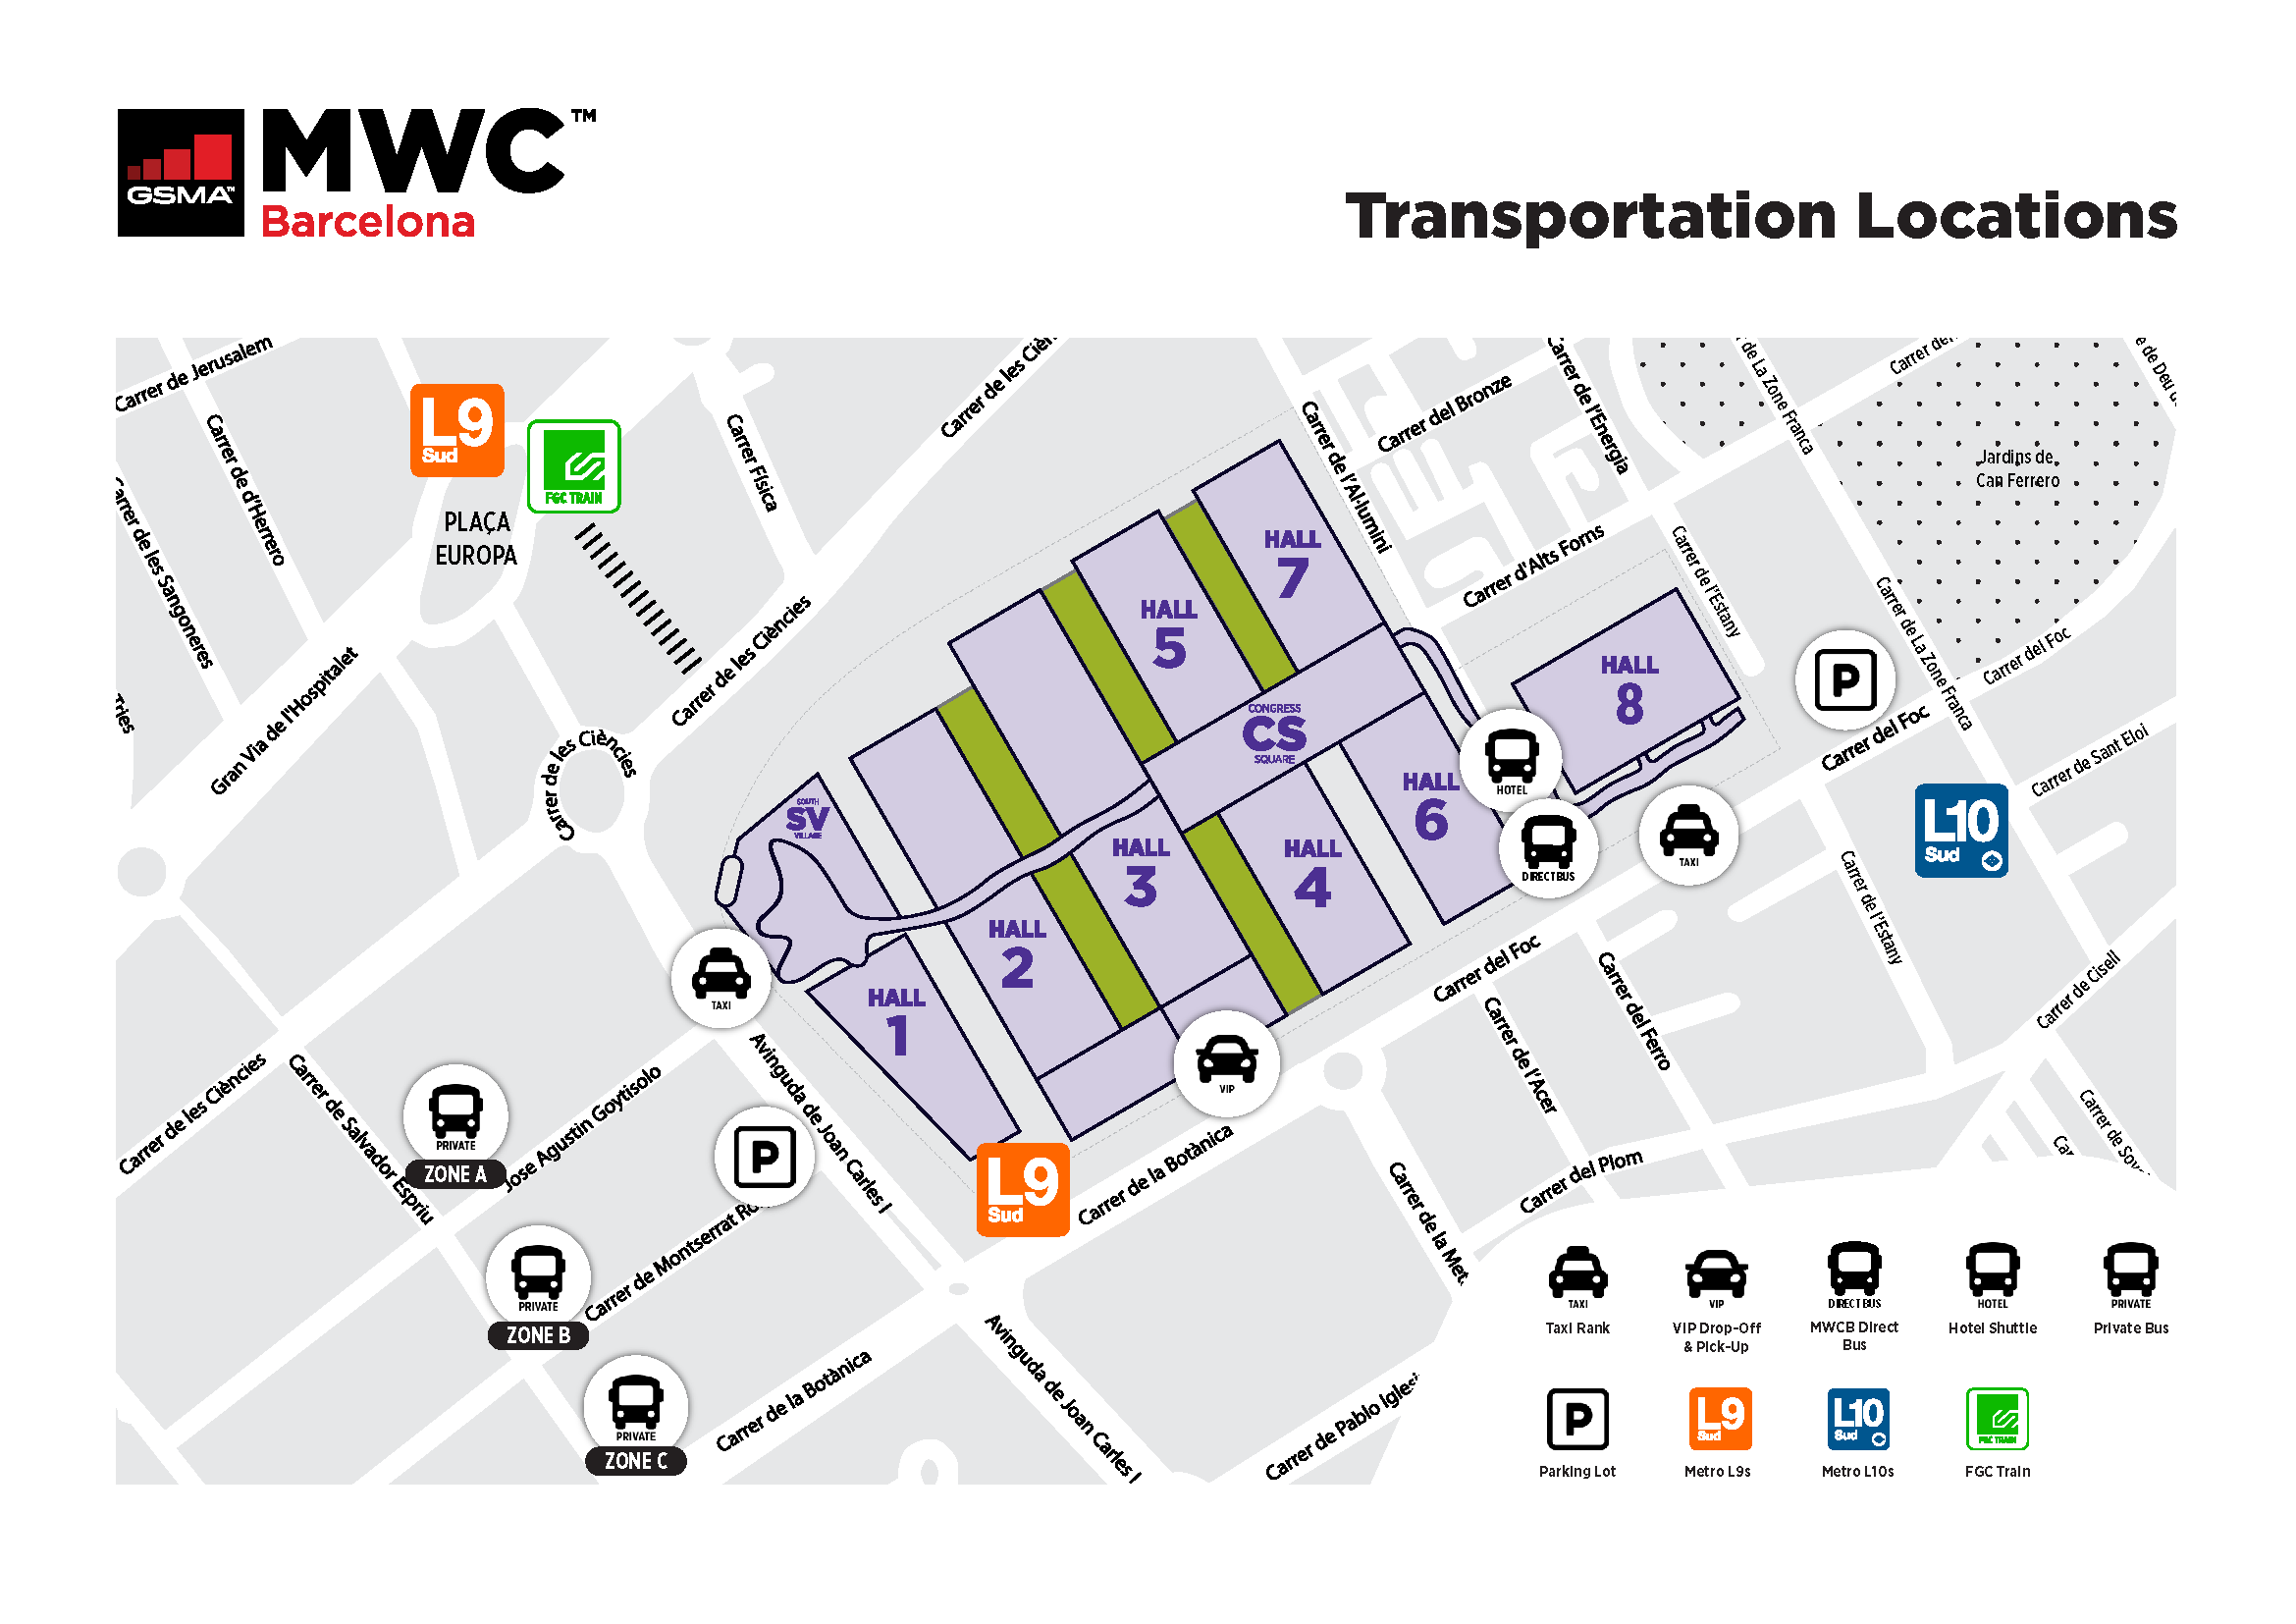 MWC Barcelona Transporation Map